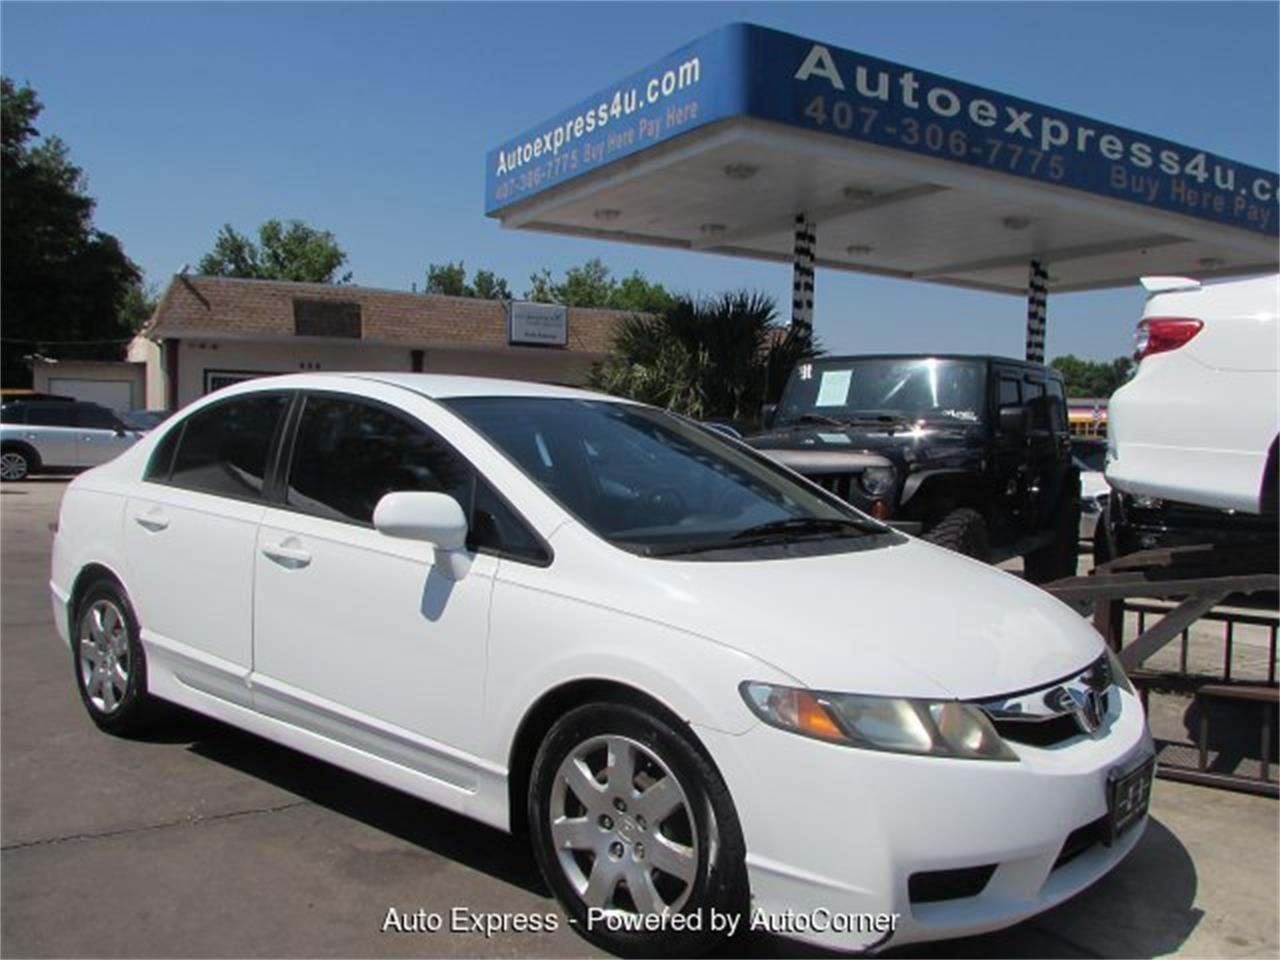 2010 Honda Civic For Sale >> For Sale 2010 Honda Civic In Orlando Florida